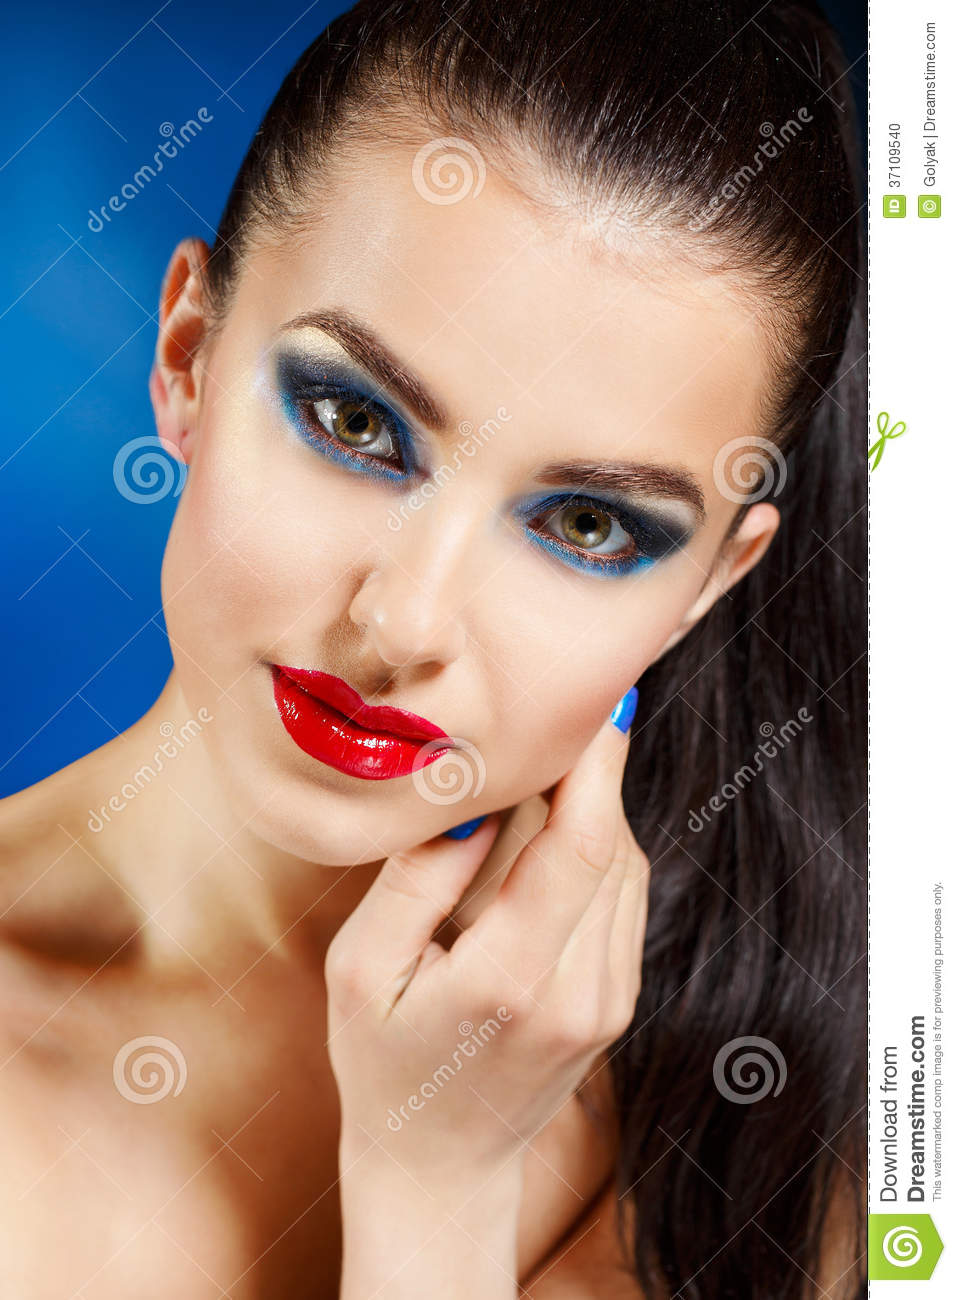 Beauty Vogue Style Fashion Model Girl Stock Photo Image